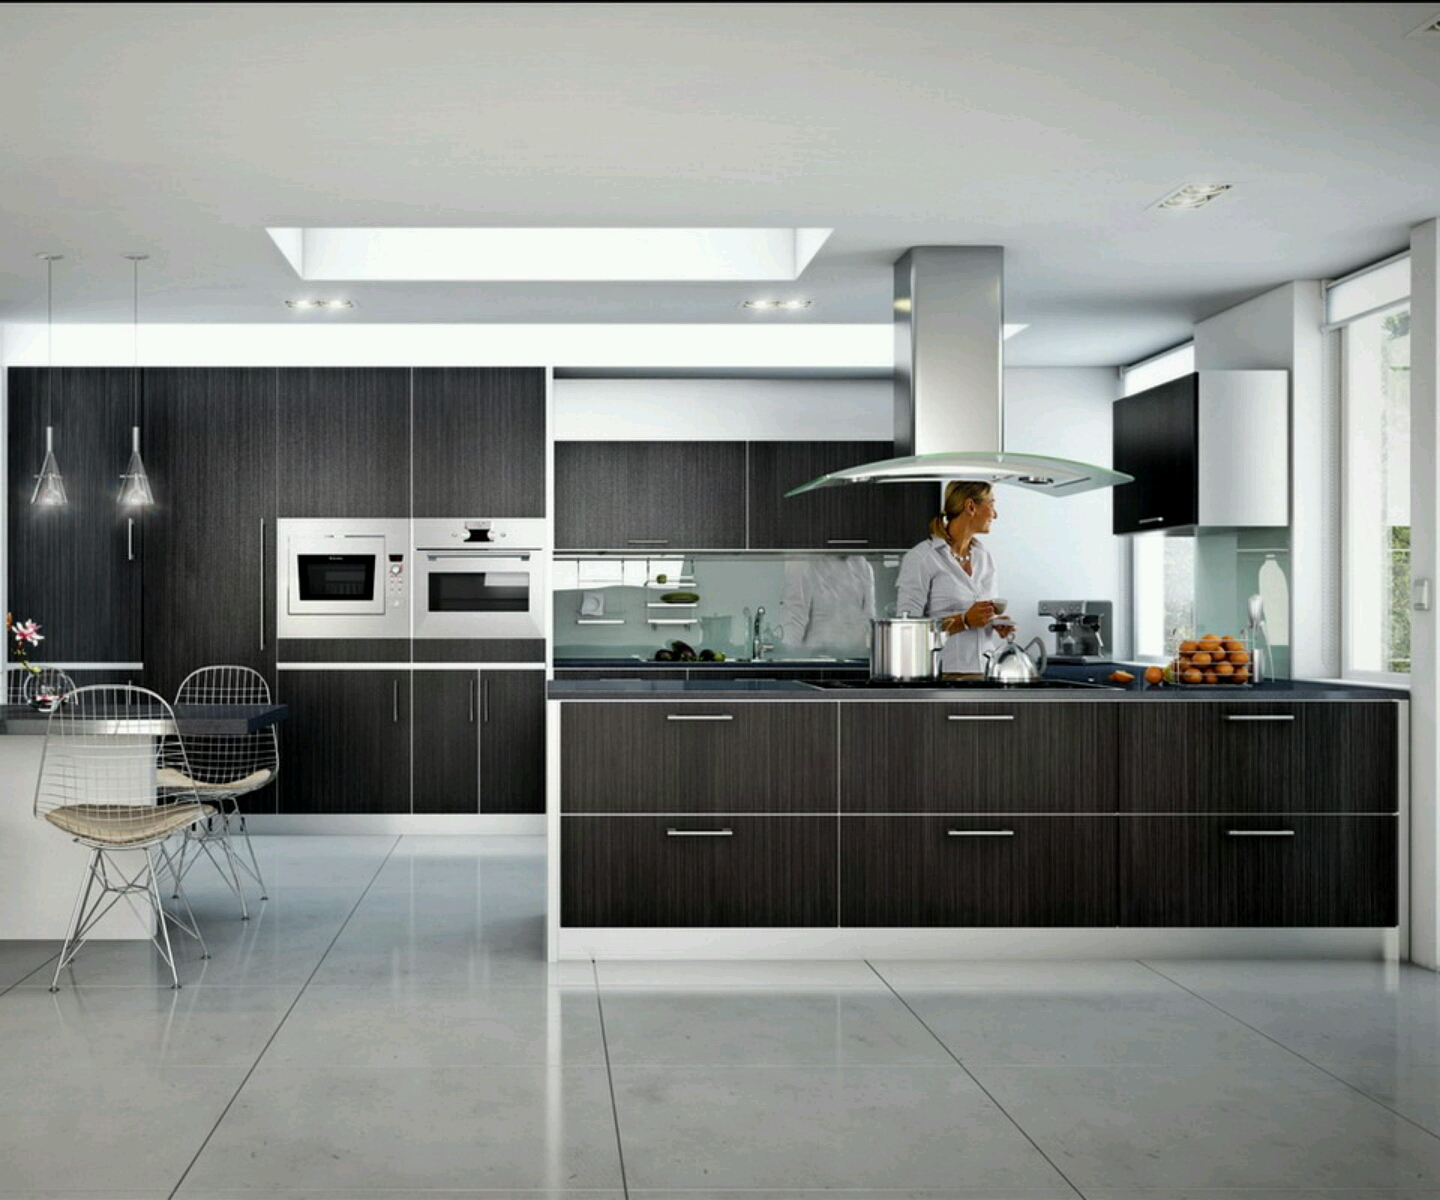 Tips of designing nice and simple modern kitchens for Great kitchen design ideas